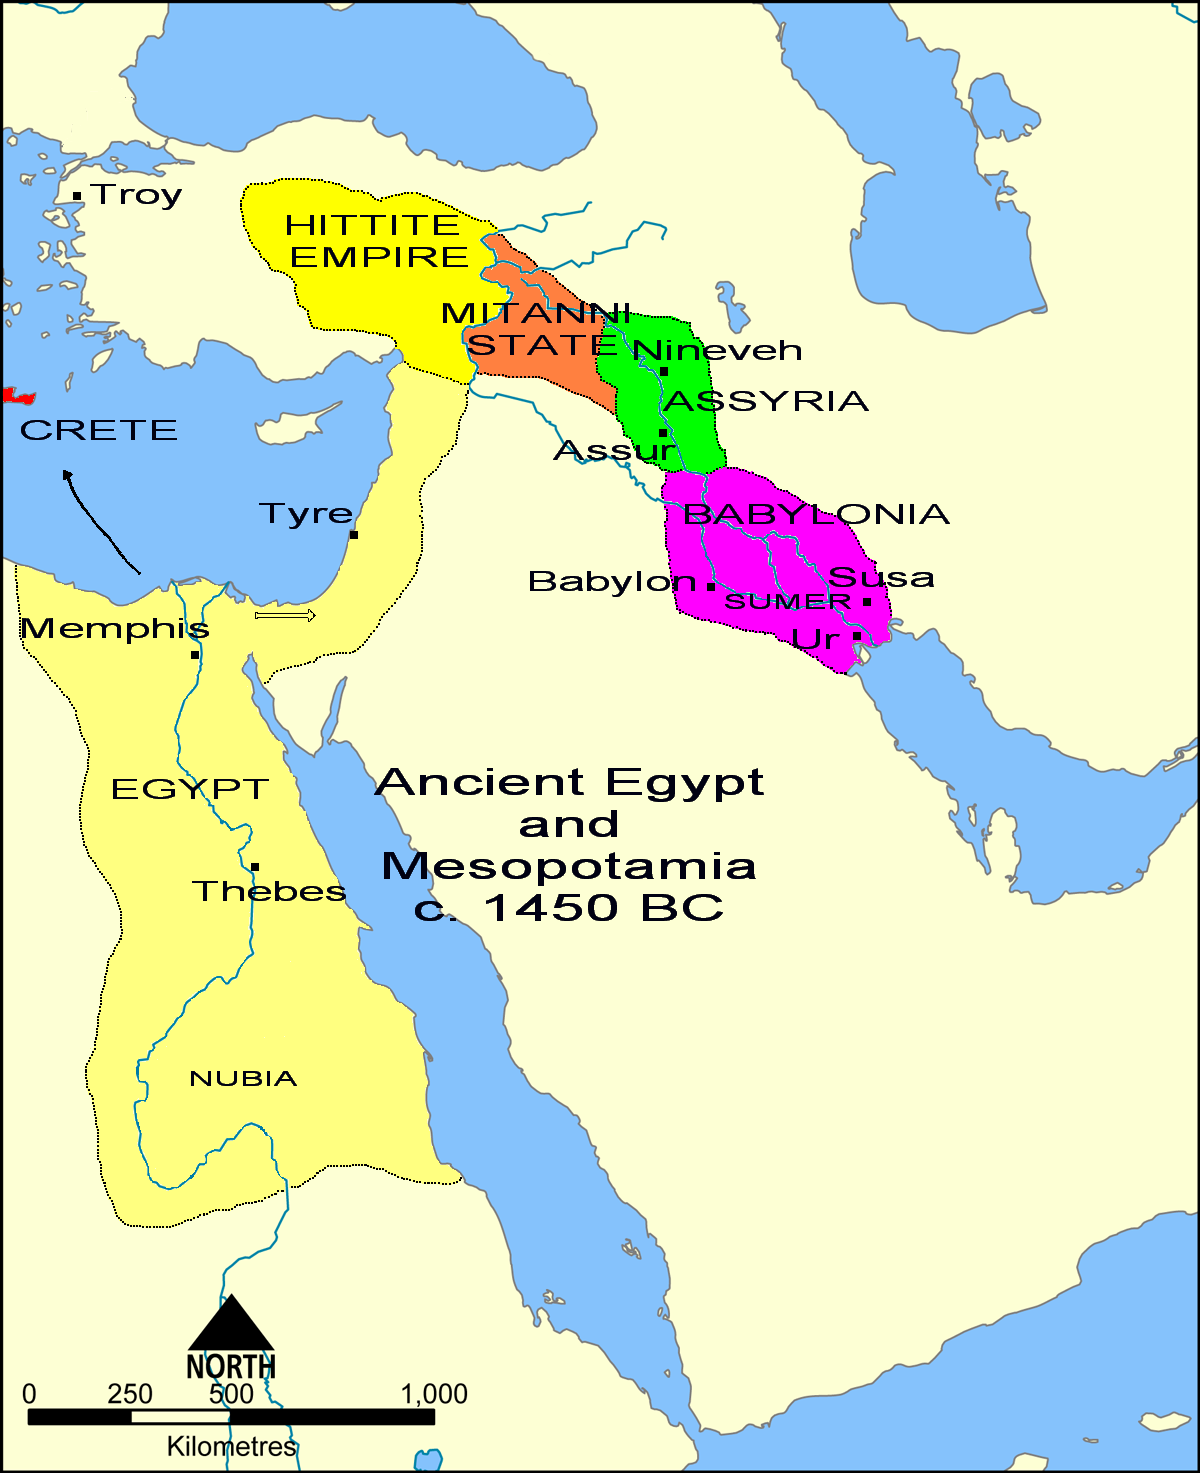 Civilizations and so on (A Brief History of Humankind)